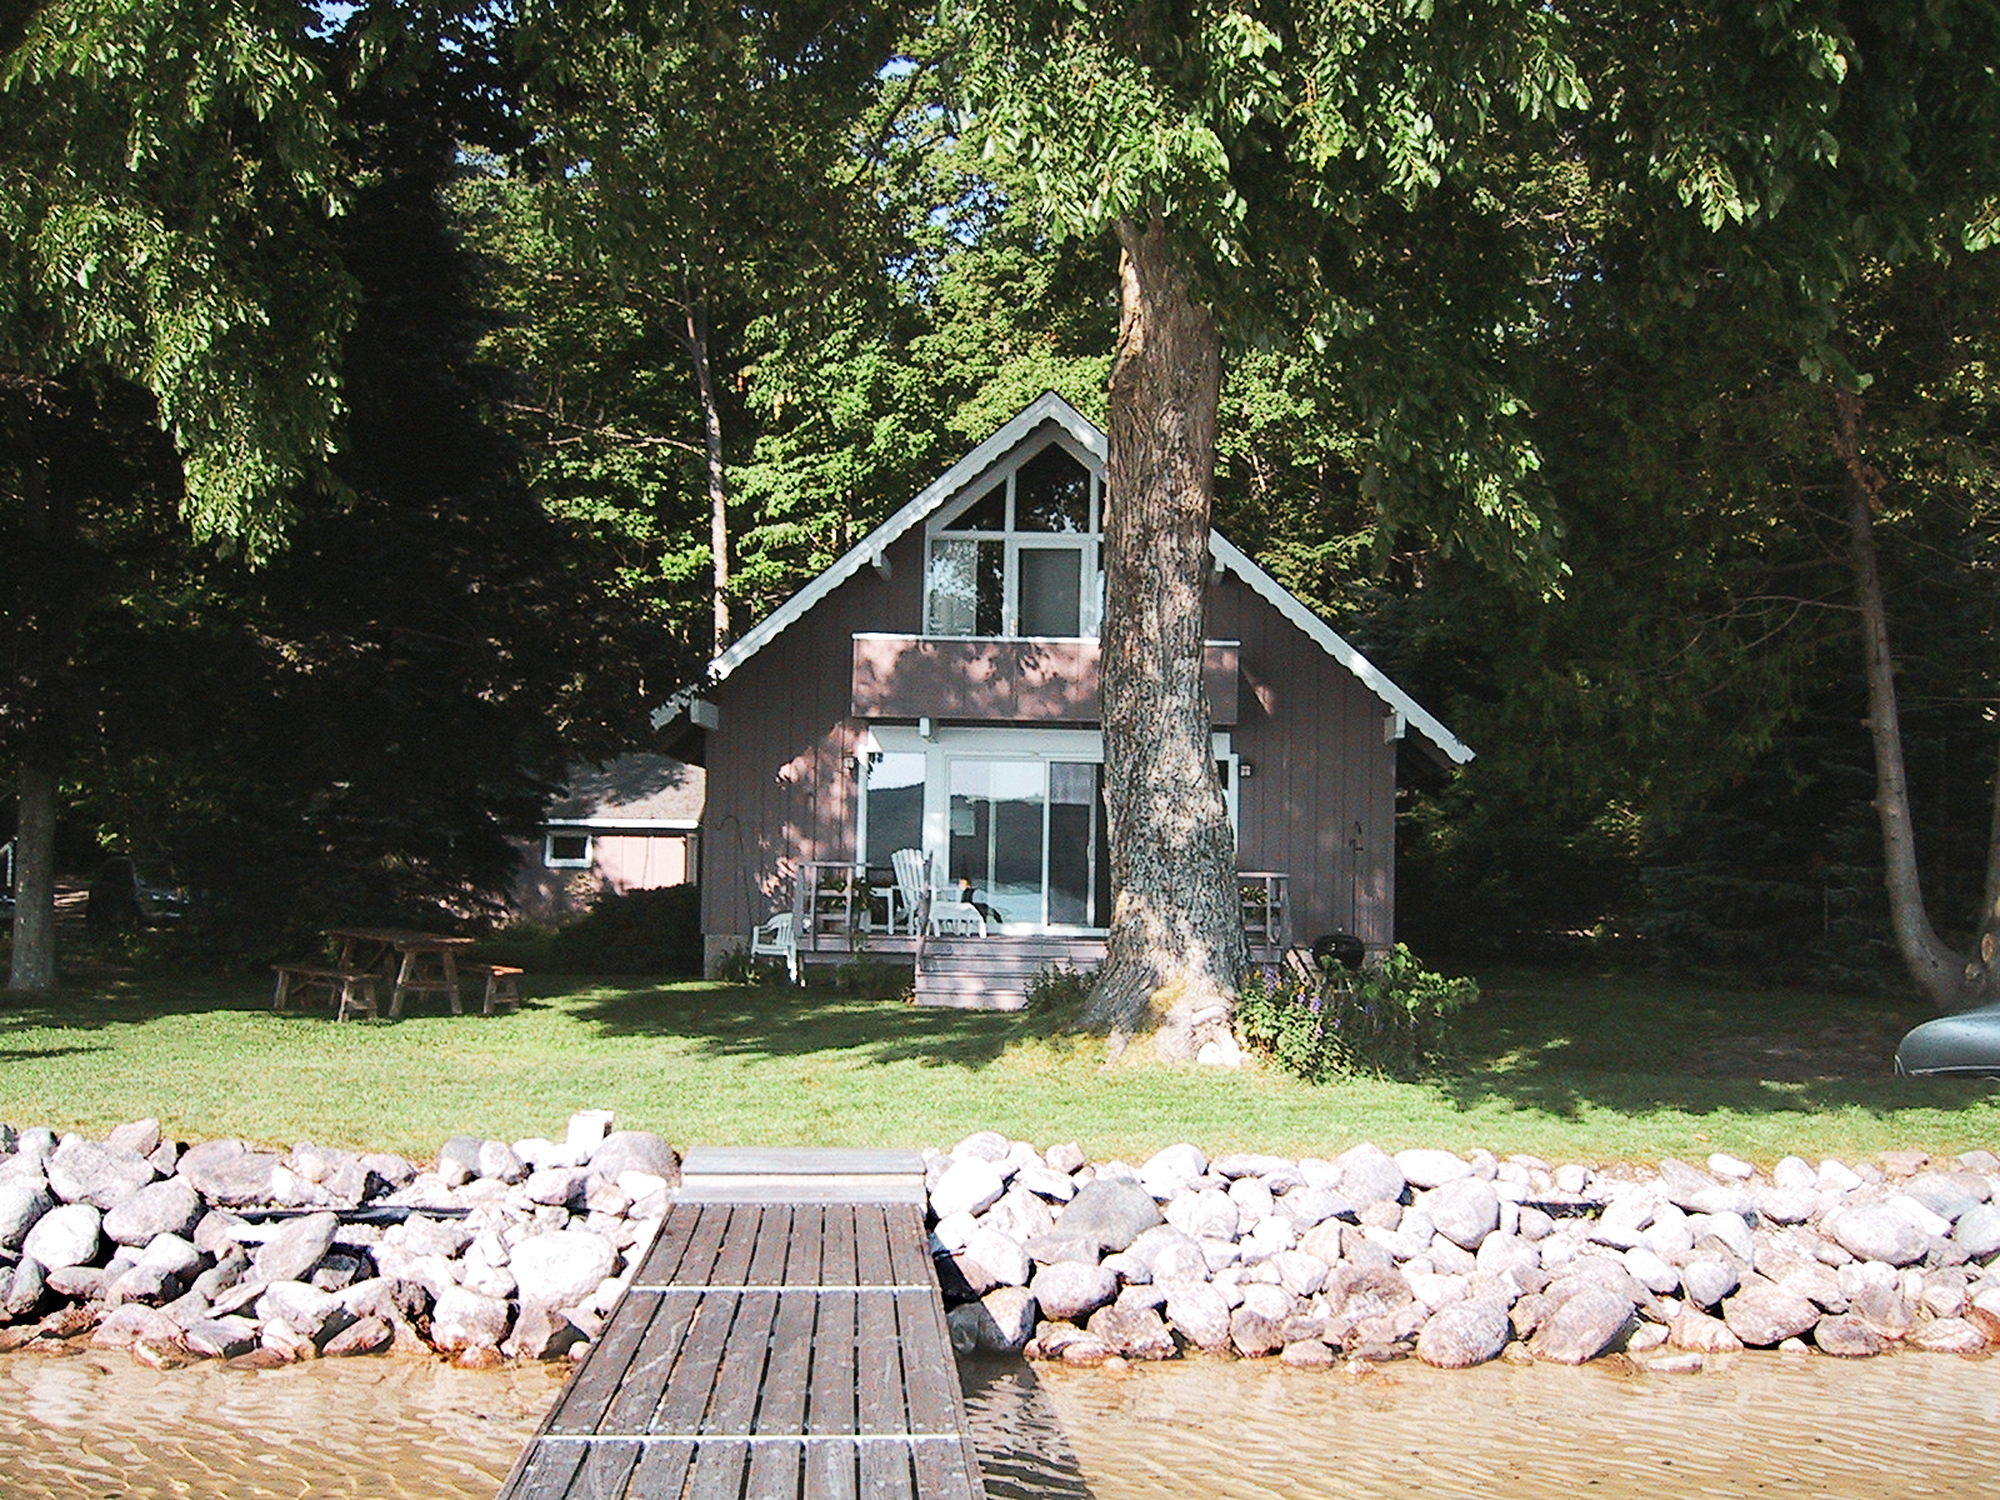 Existing Lake house northern Michigan